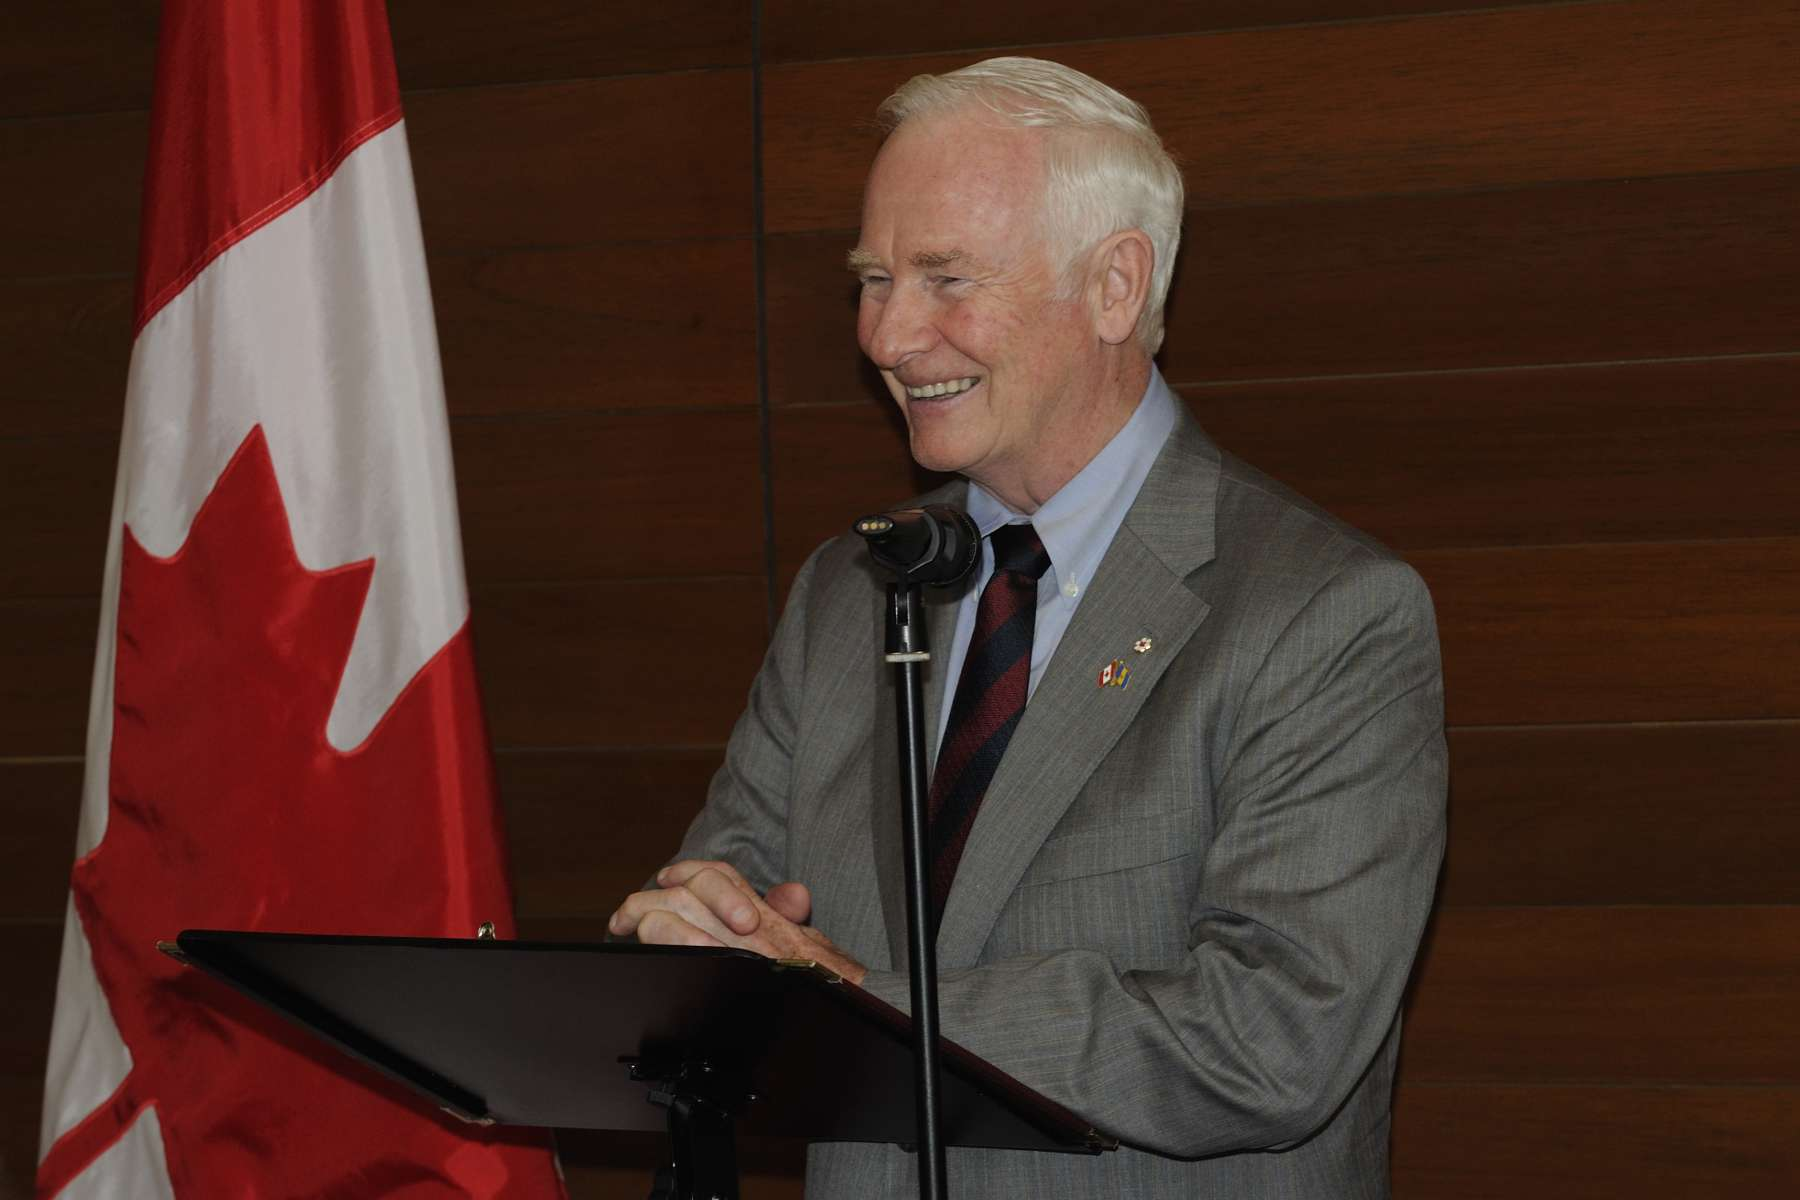 The Governor General proposed a toast in honour of Her Majesty Queen Elizabeth II's Diamond Jubilee celebrations.